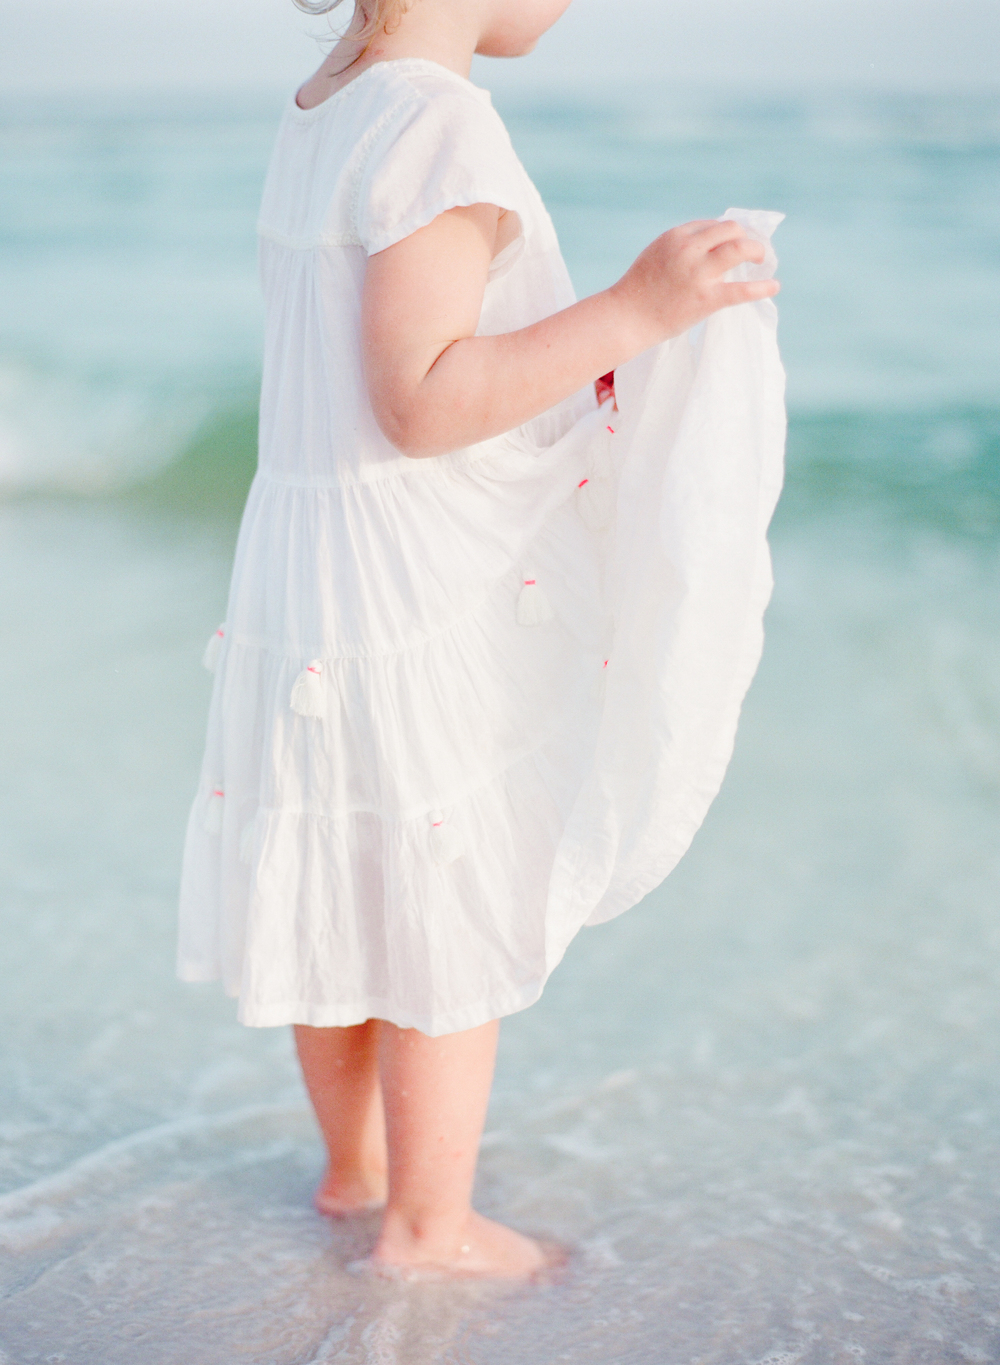 Little girl white dress at the beach | Kaylie B. Poplin Photography | Watercolor, Florida Fine Art Film Photographer